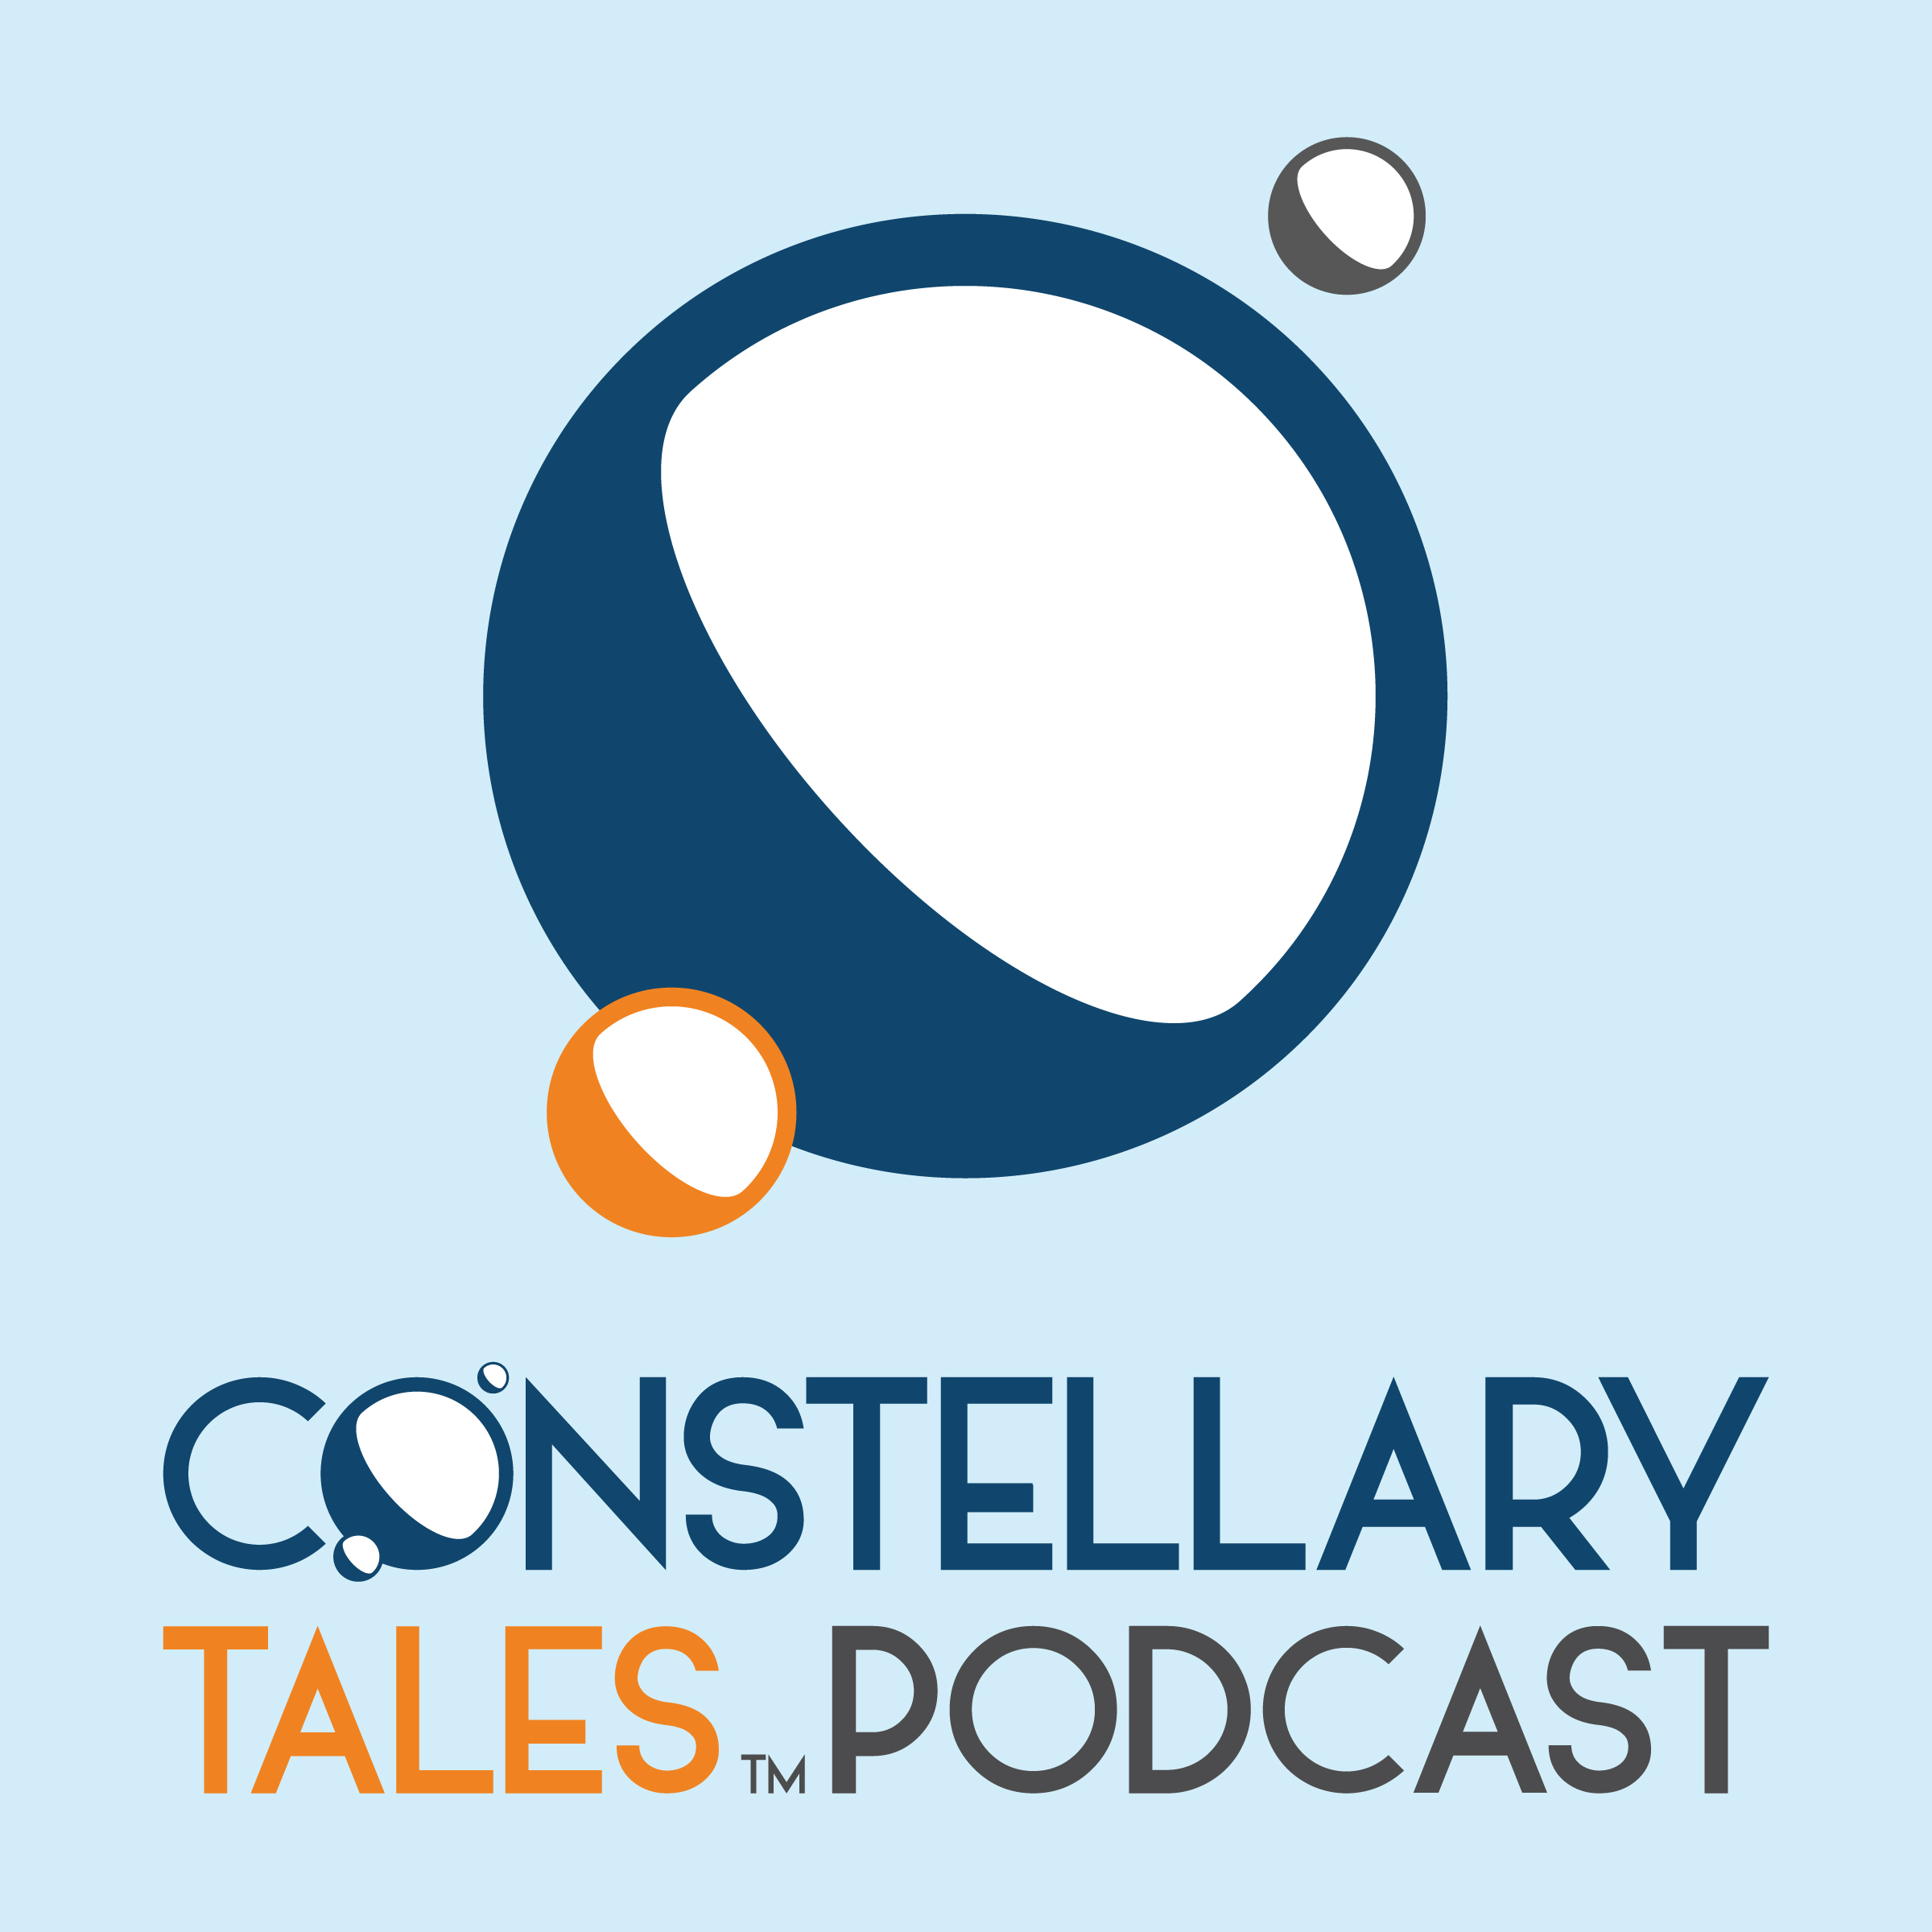 Constellary Tales Podcast show art